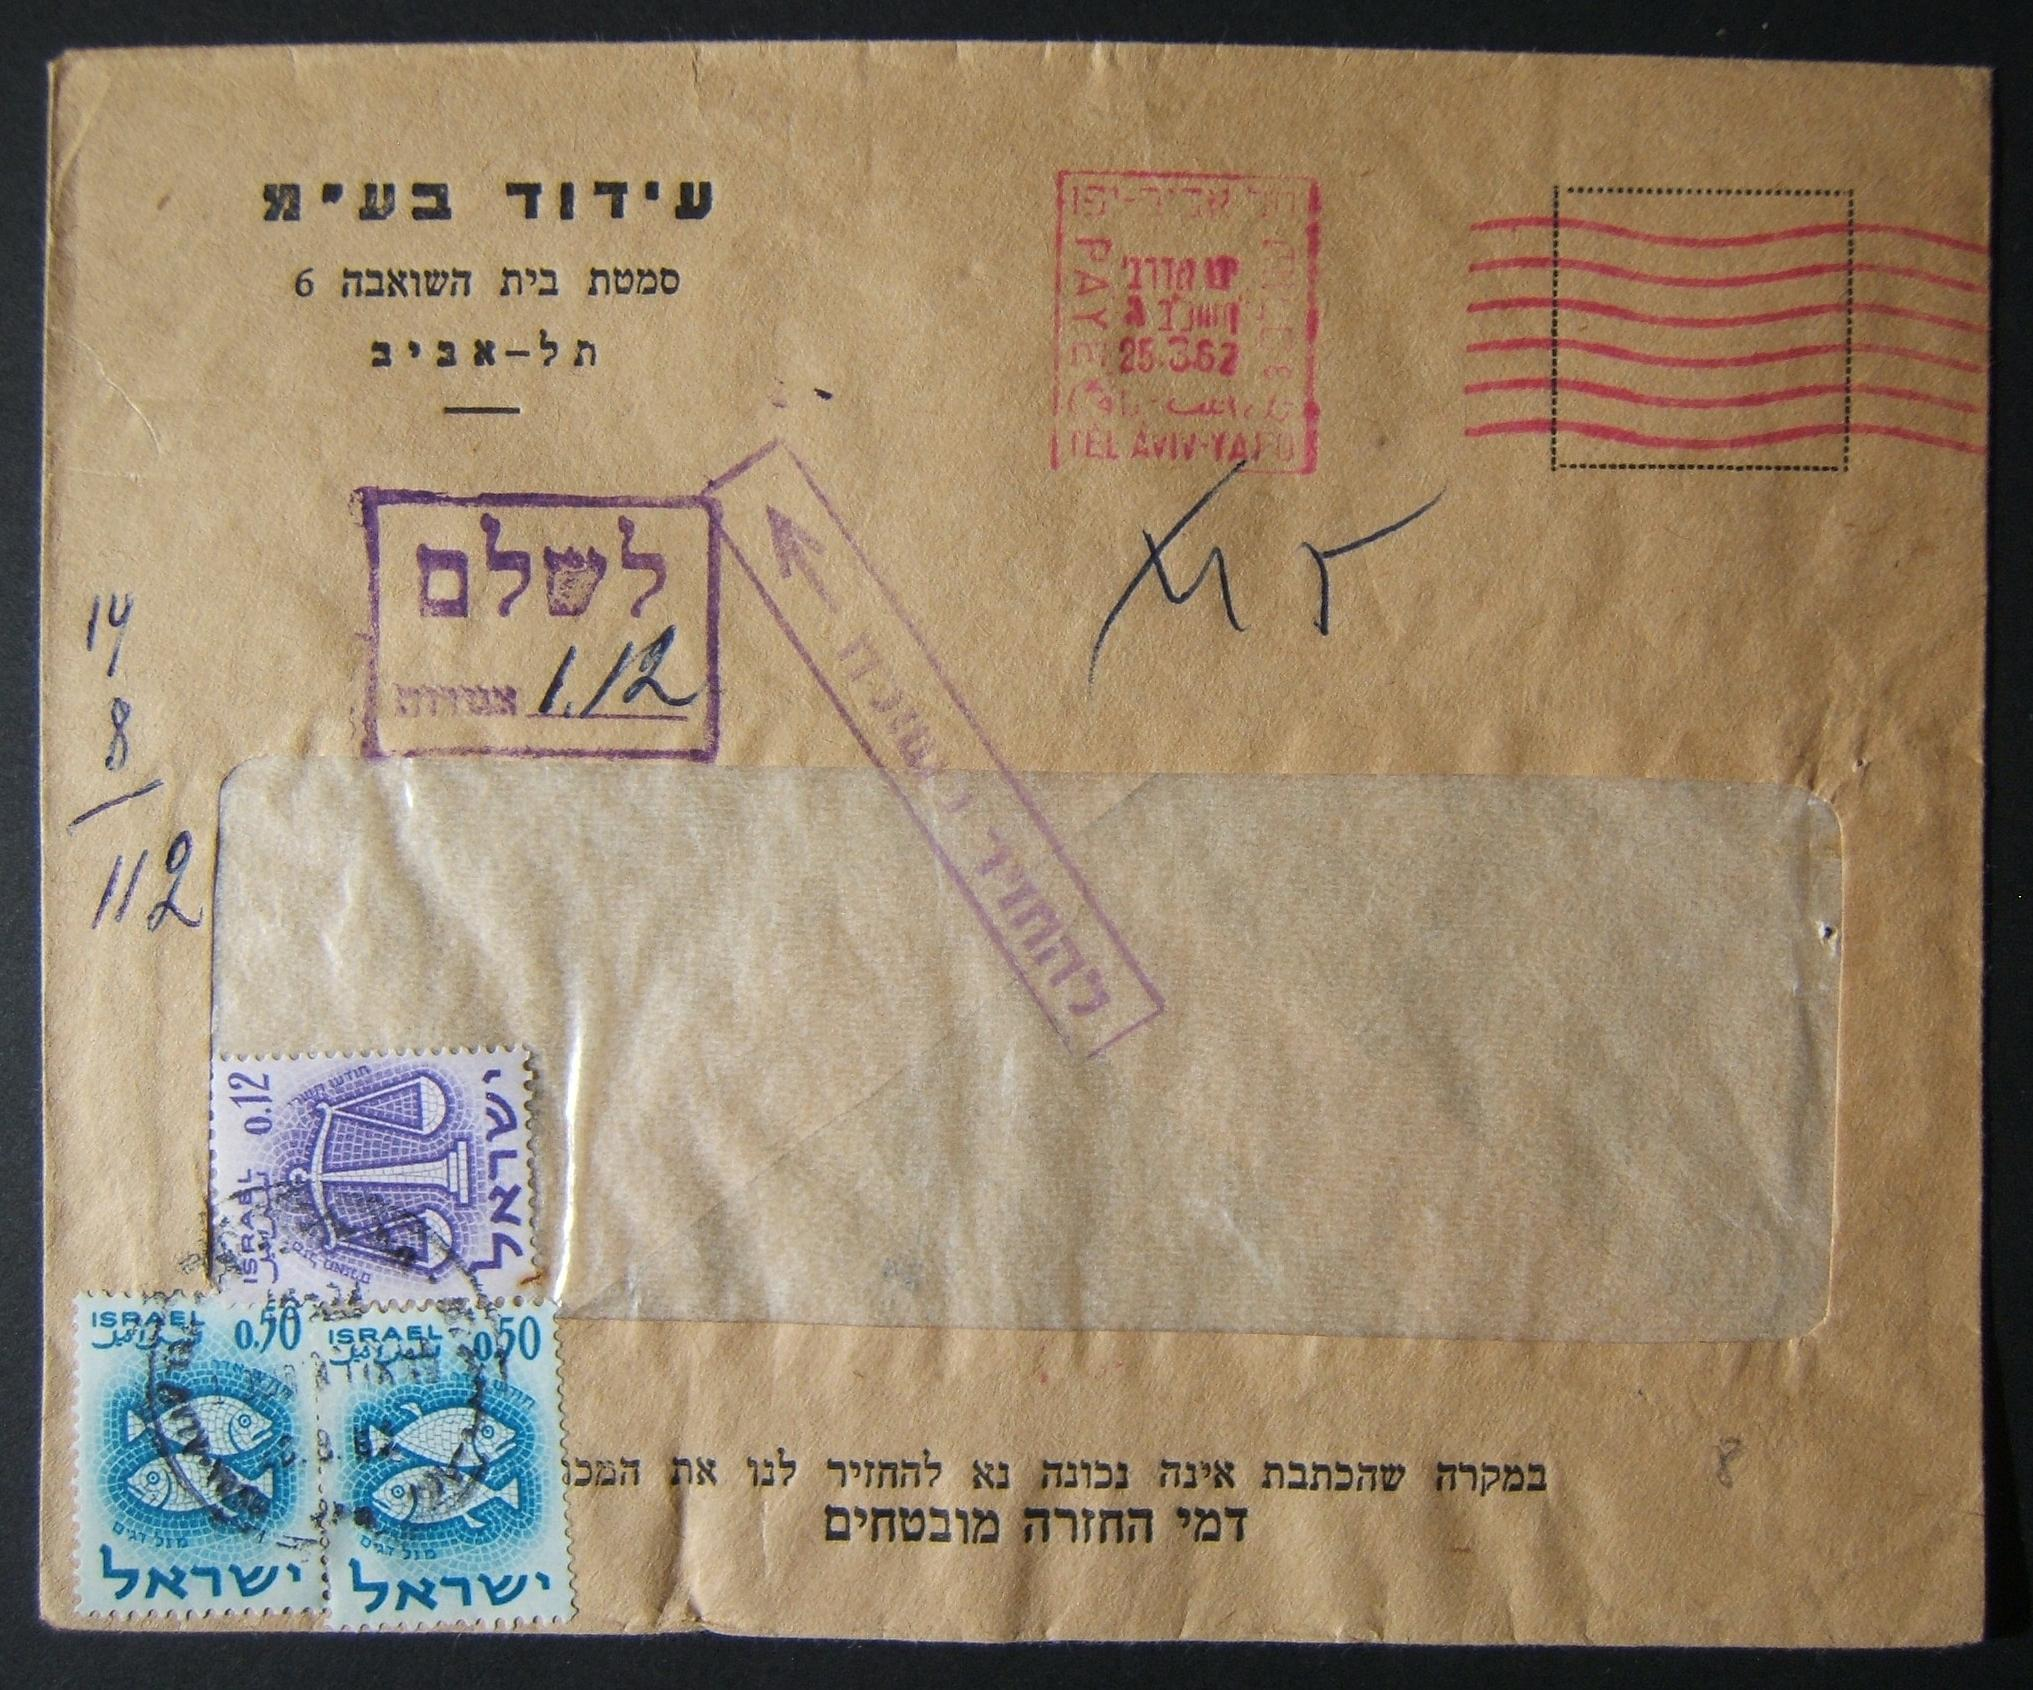 1962 domestic 'top of the pile' taxed franking: 25-3-62 printed matter commercial cover ex TLV branch of Idud Ltd. franked by machine prepayment at the DO-11 period 8 Ag PM rate bu